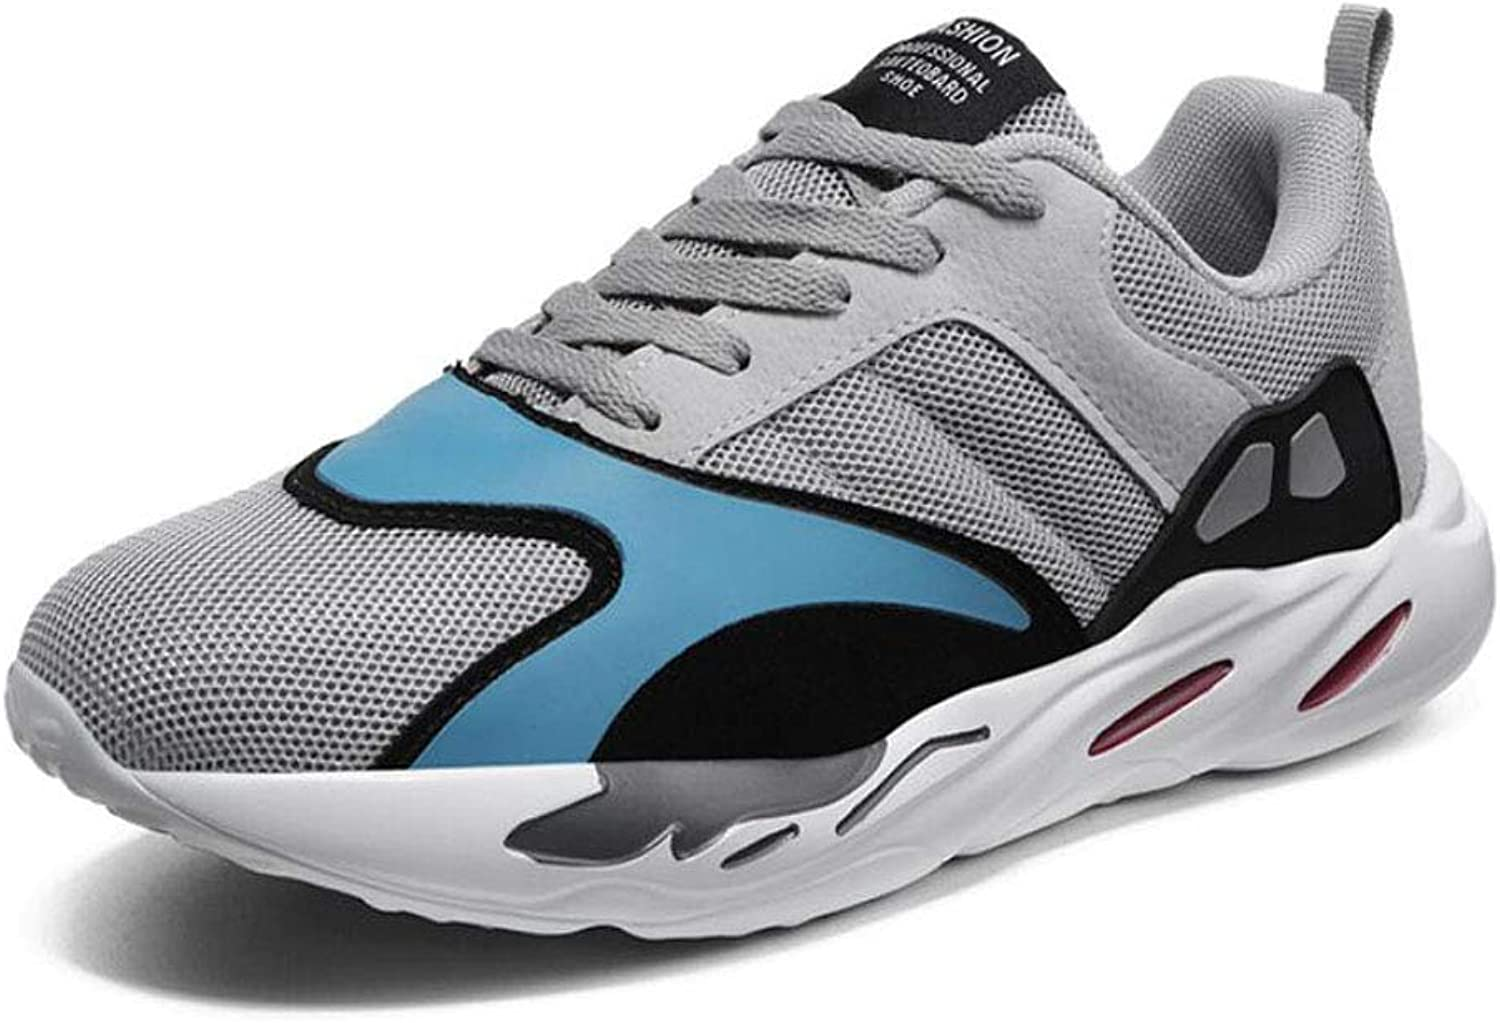 Mens Womens Running shoes Air Cushion Sneakers Lightweight Athletic Tennis Sport shoes for Men.